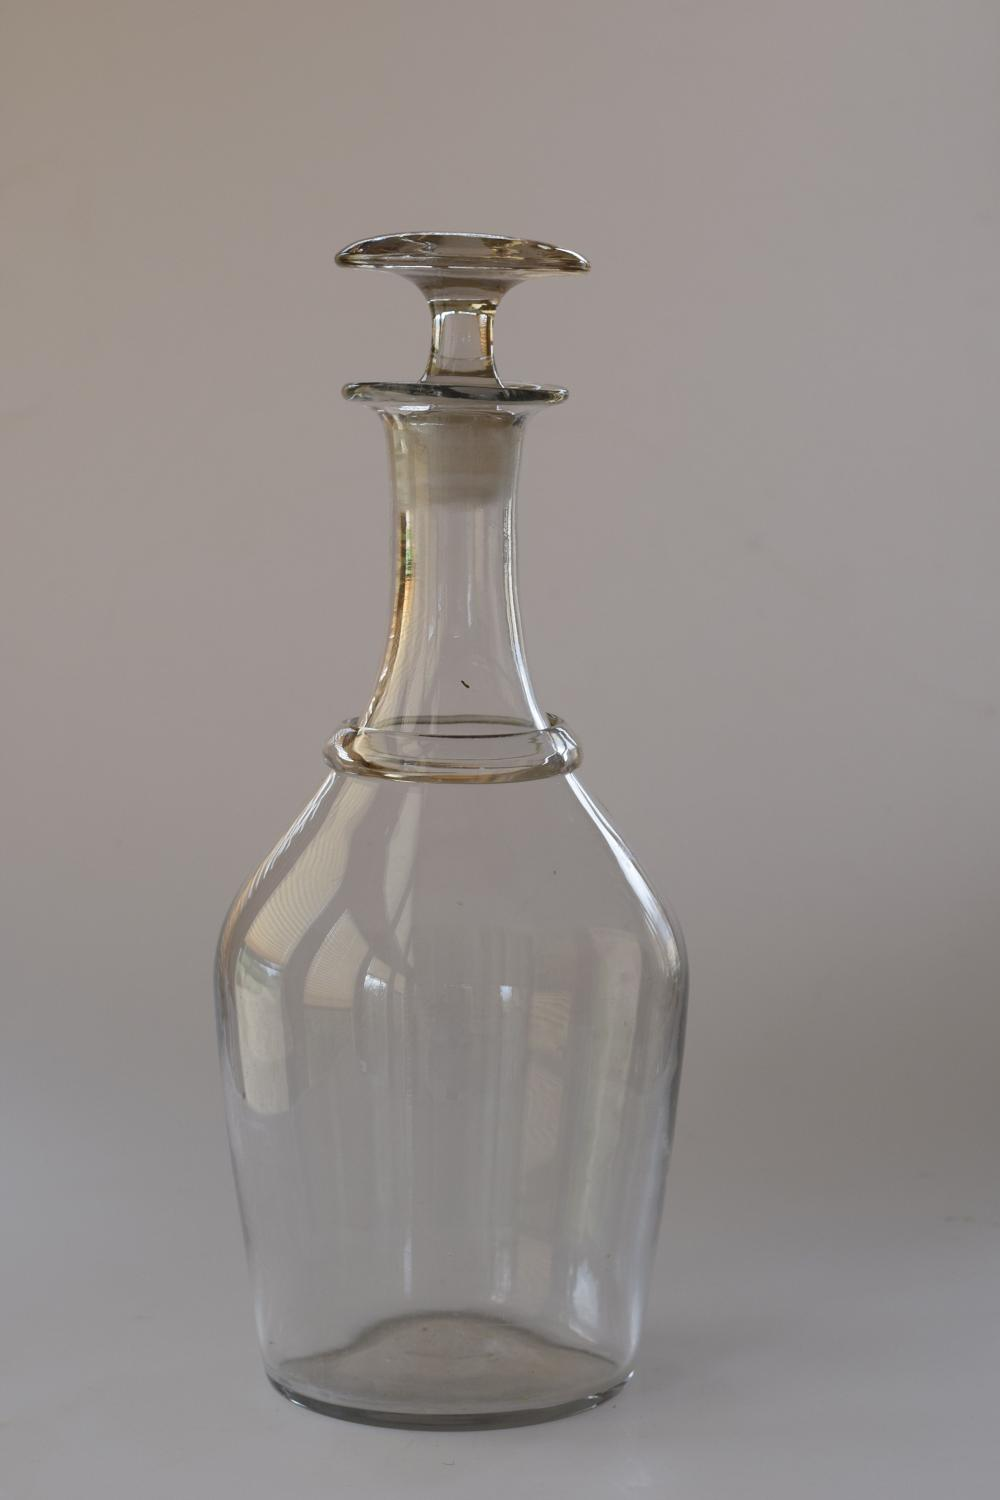 French cider decanter with stopper